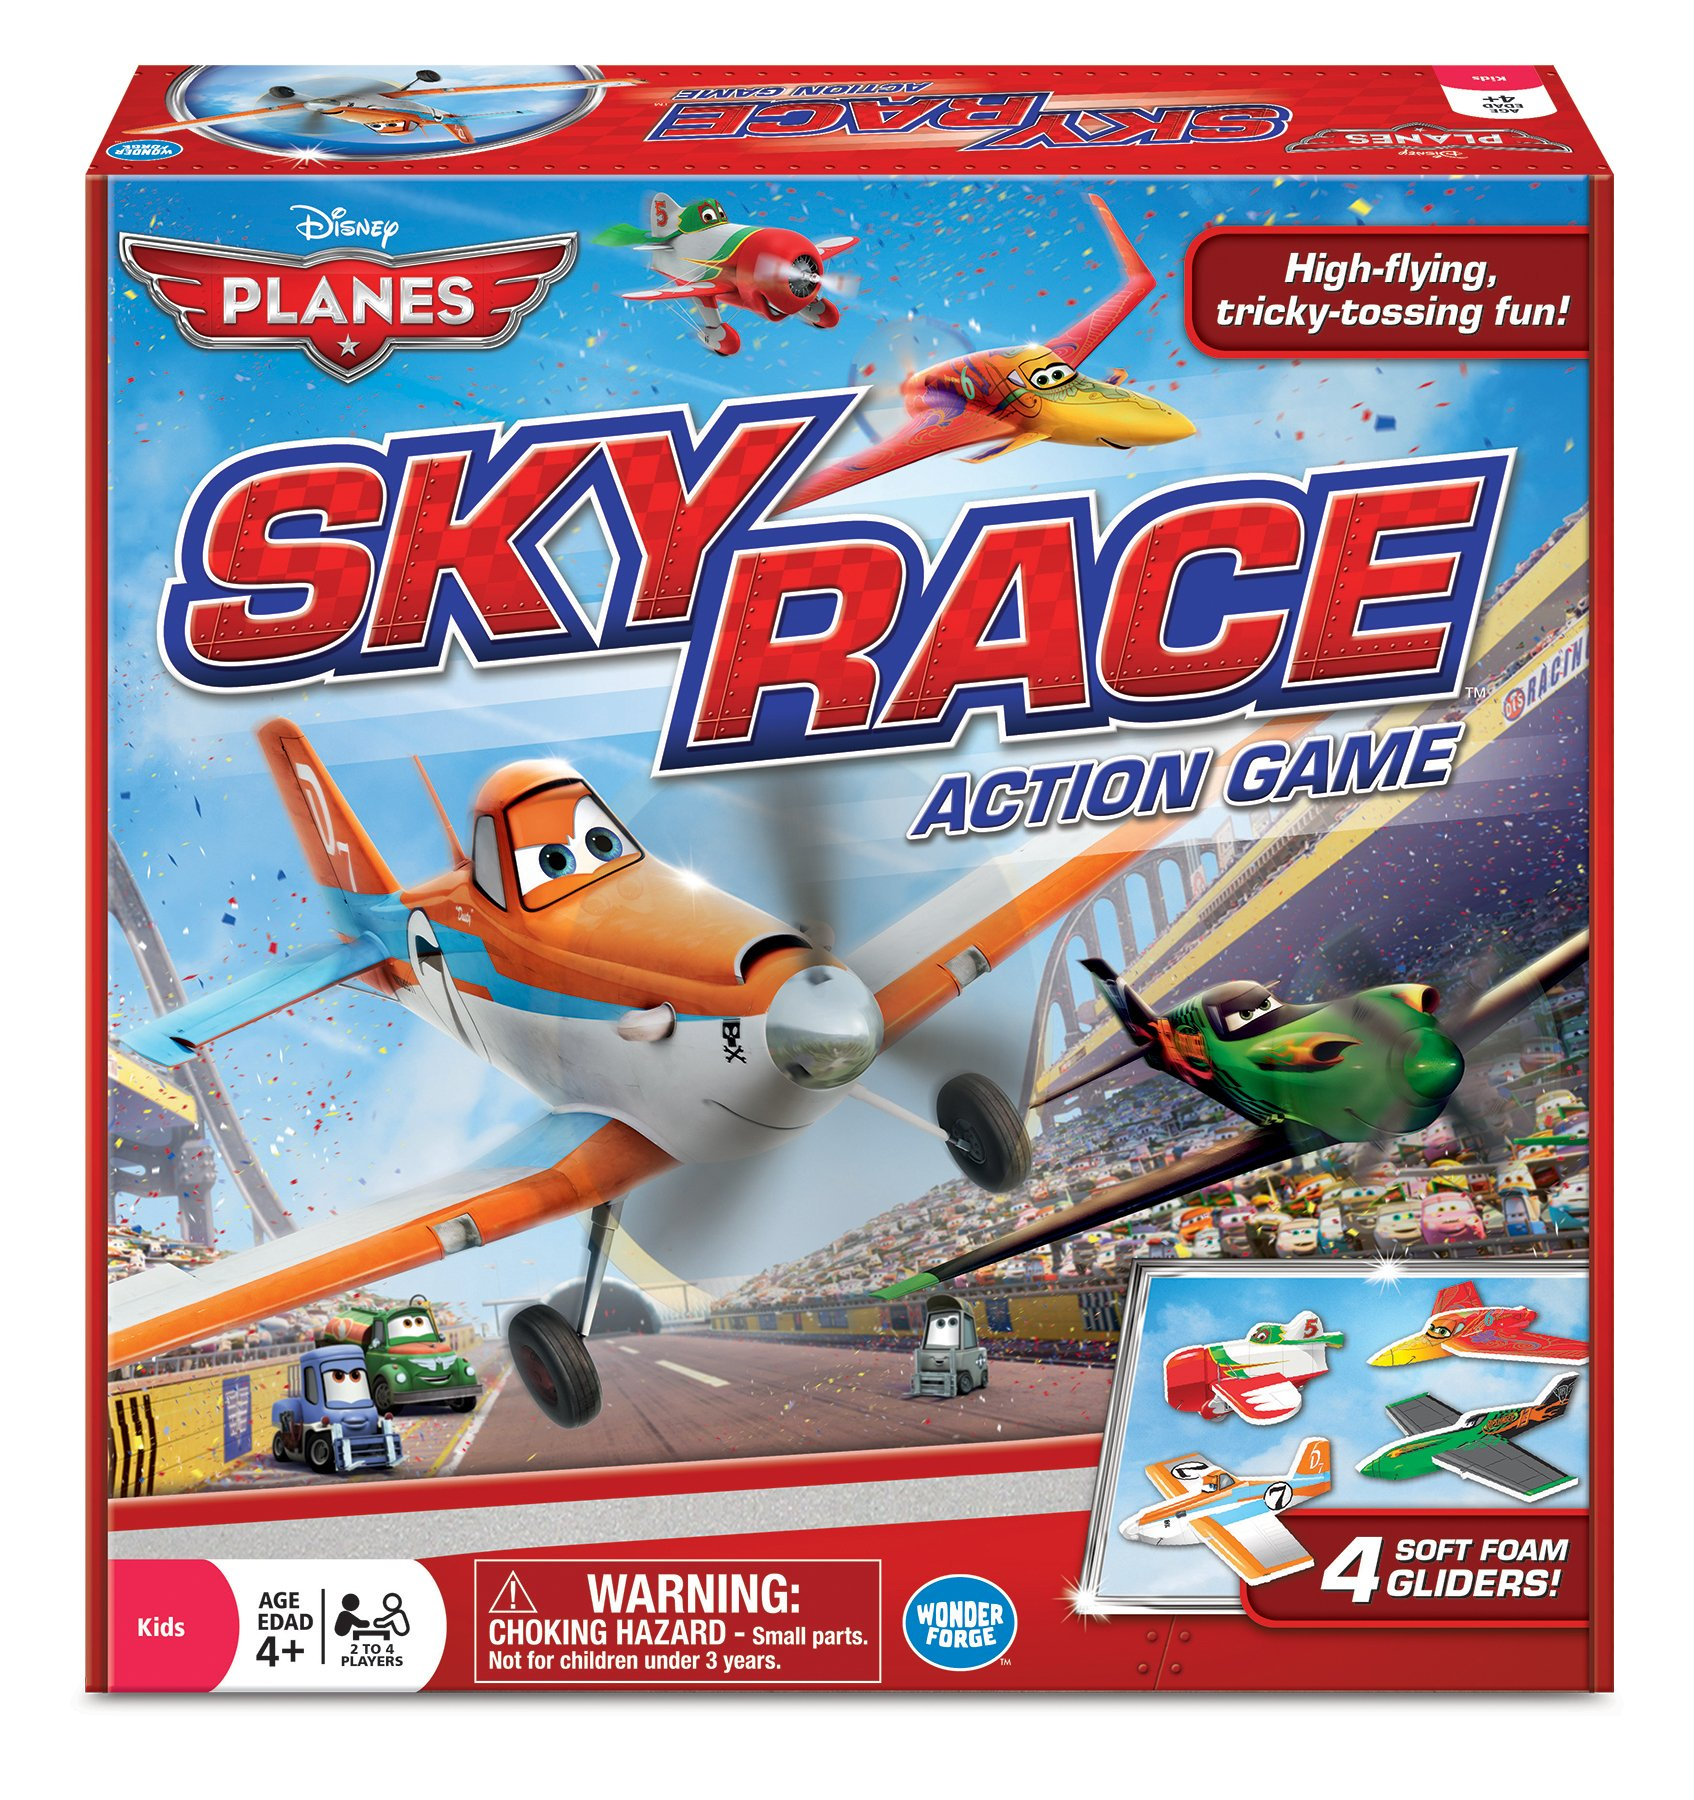 Disney Planes Sky Race Game, Red by The Wonder Forge